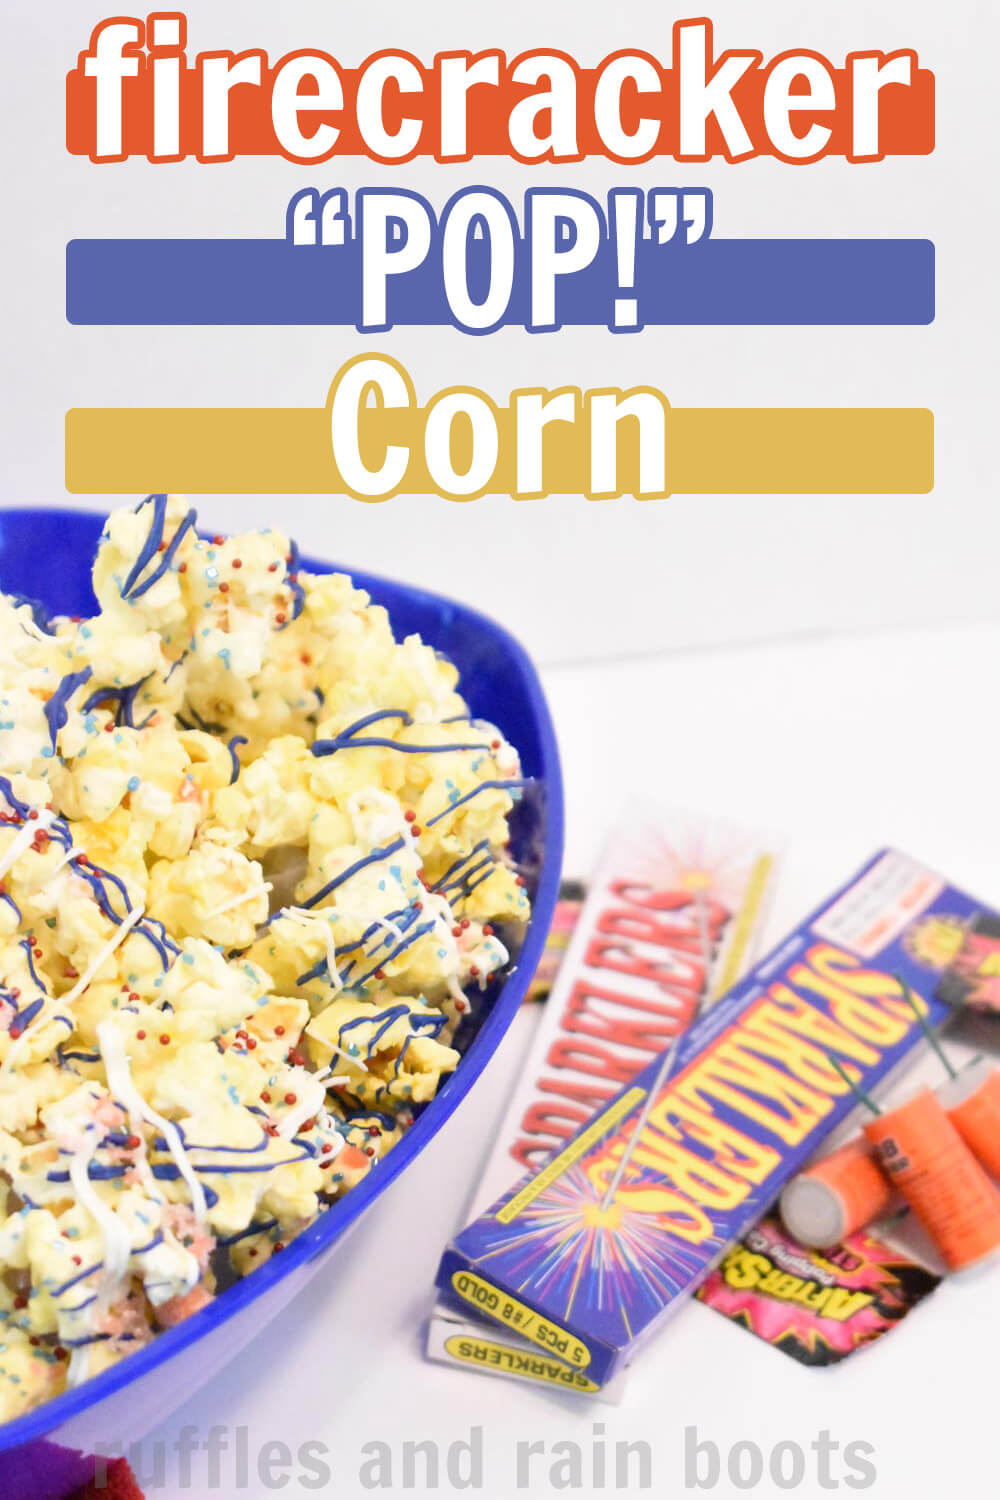 patriotic popcorn on white table with firecracker boxes with text which reads firecracker popcorn